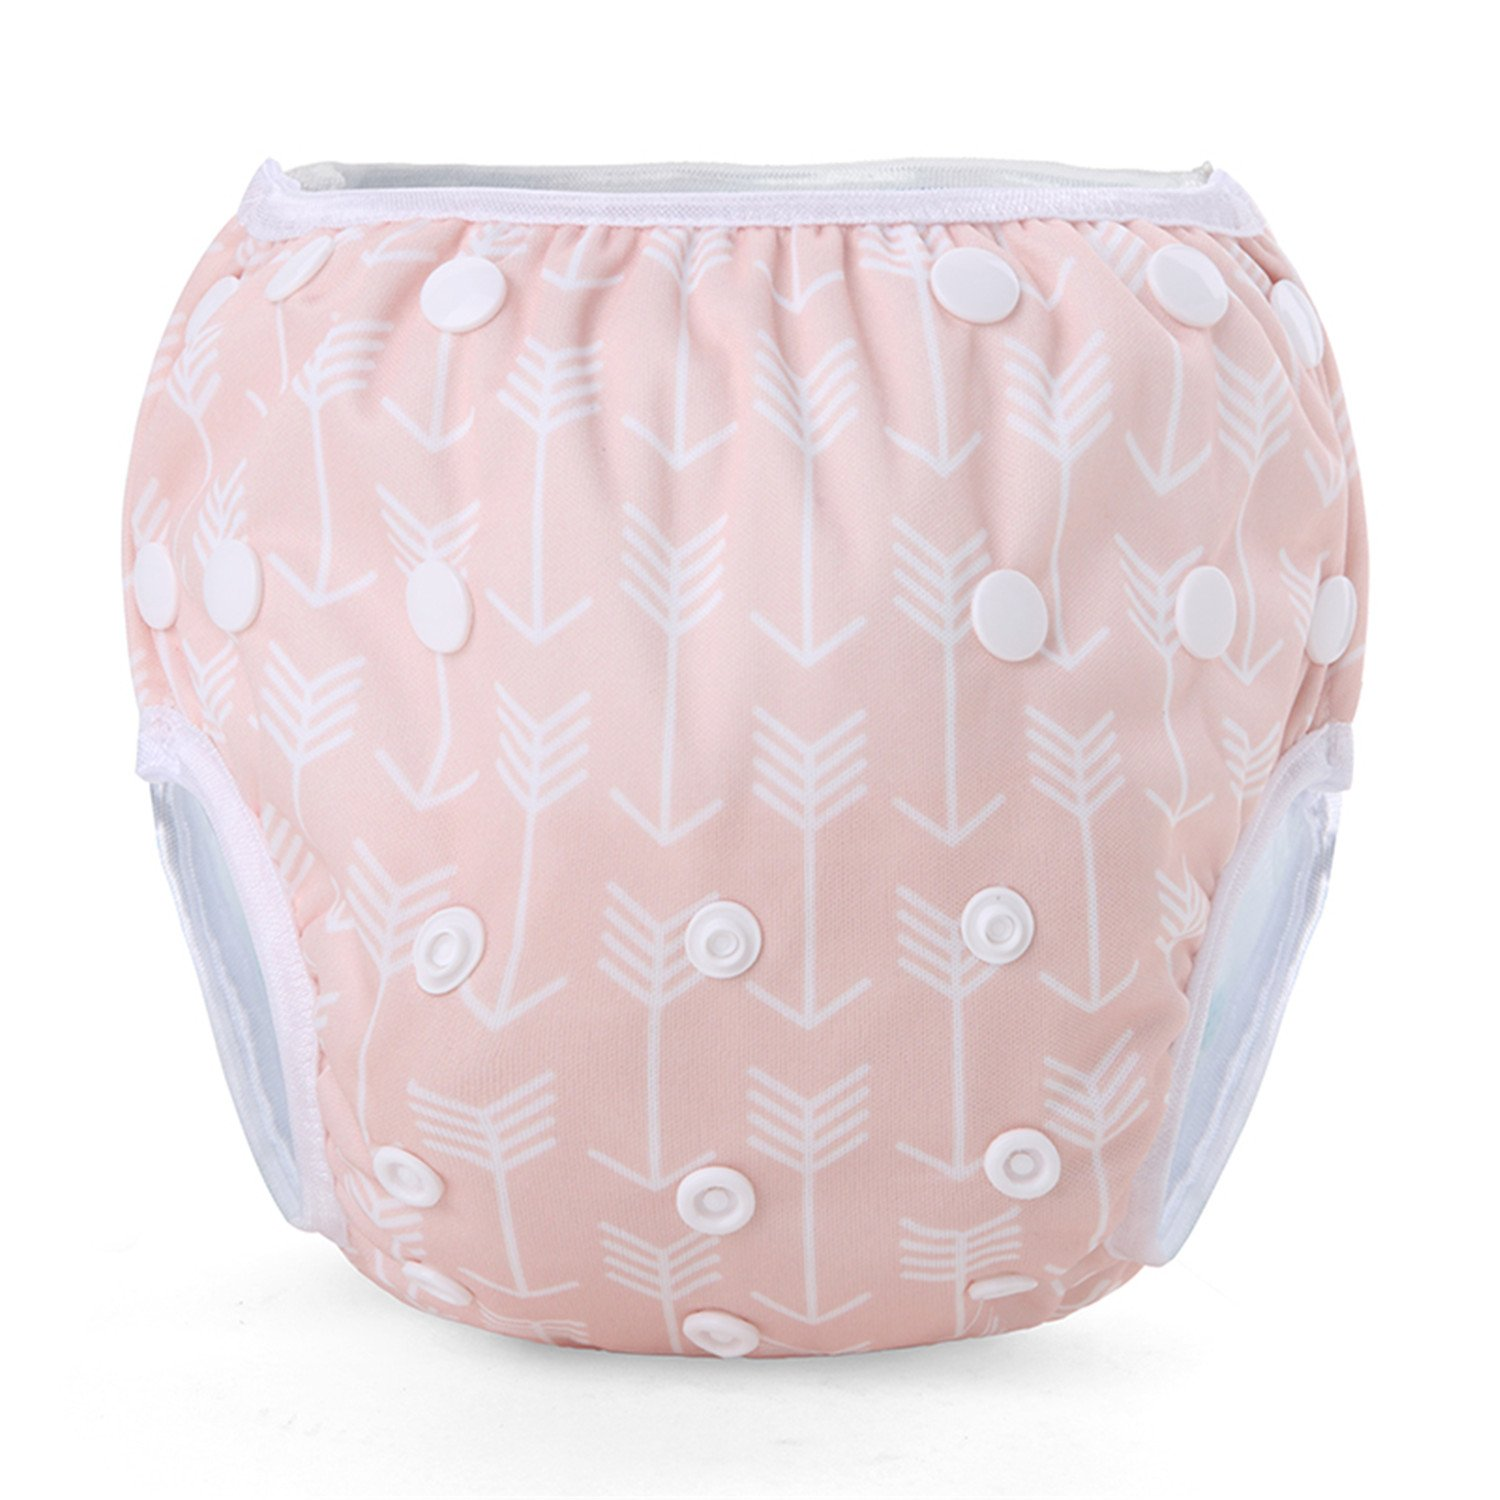 Pack of 2 Storeofbaby 2pcs Reusable Washable Baby Swim Diapers with Adjustable Snaps